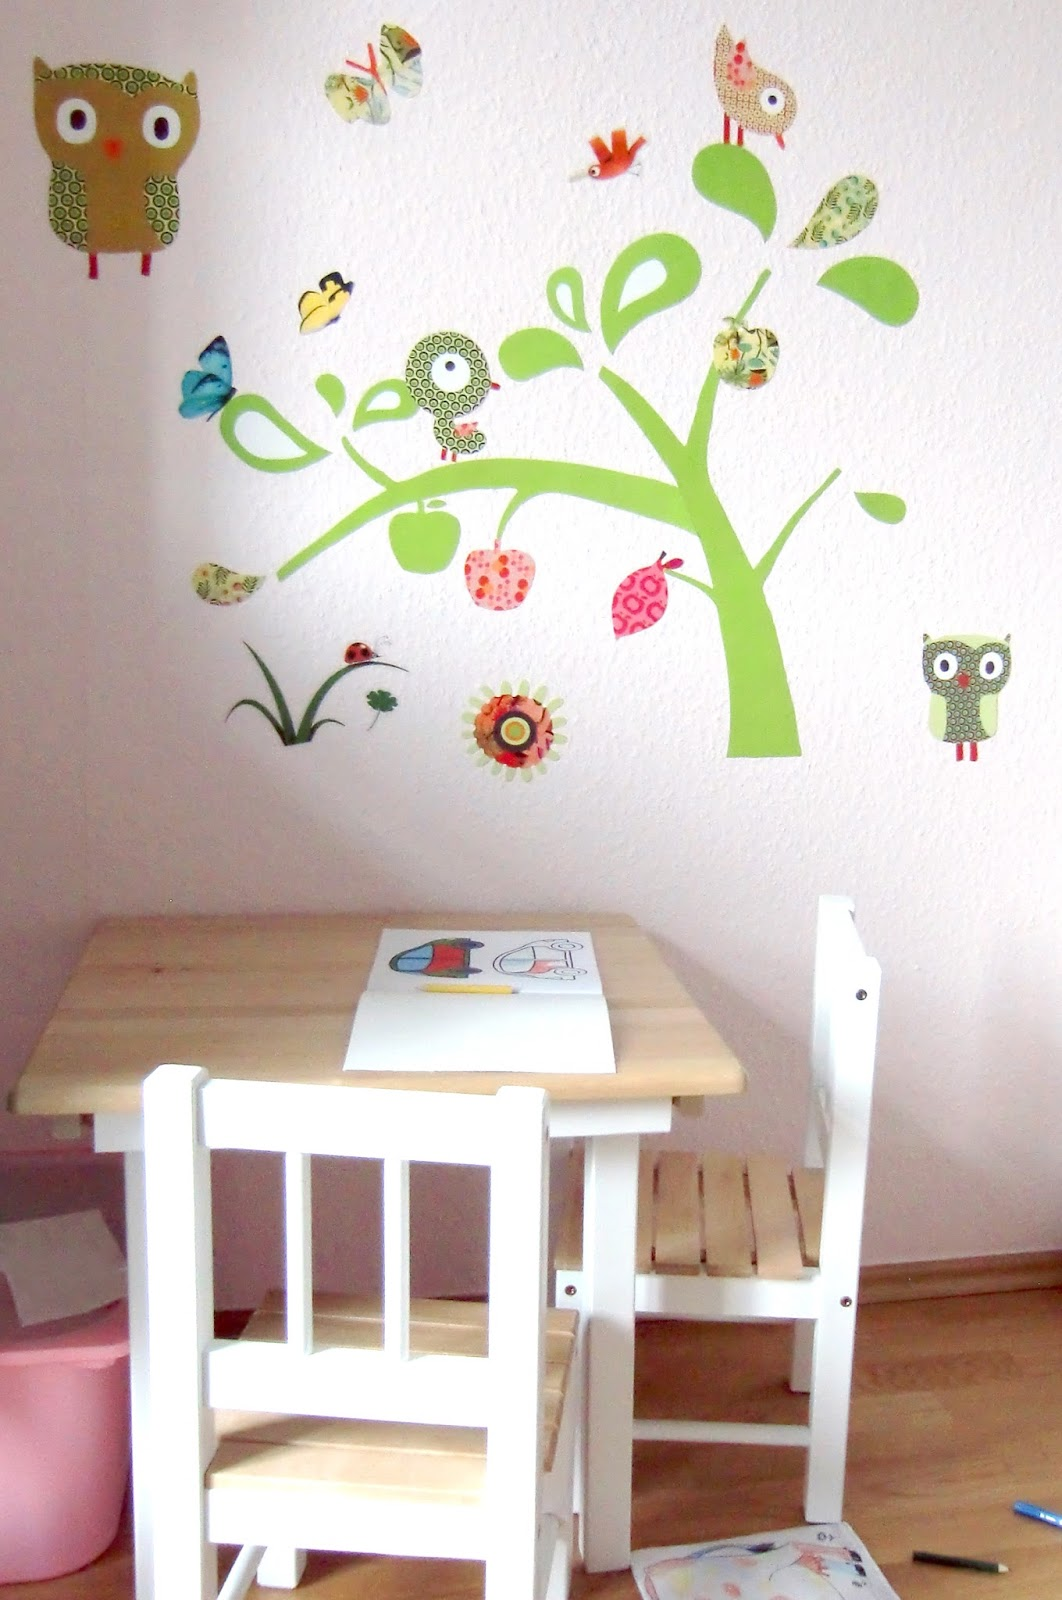 Kinderzimmer ausmalen ideen   home creation